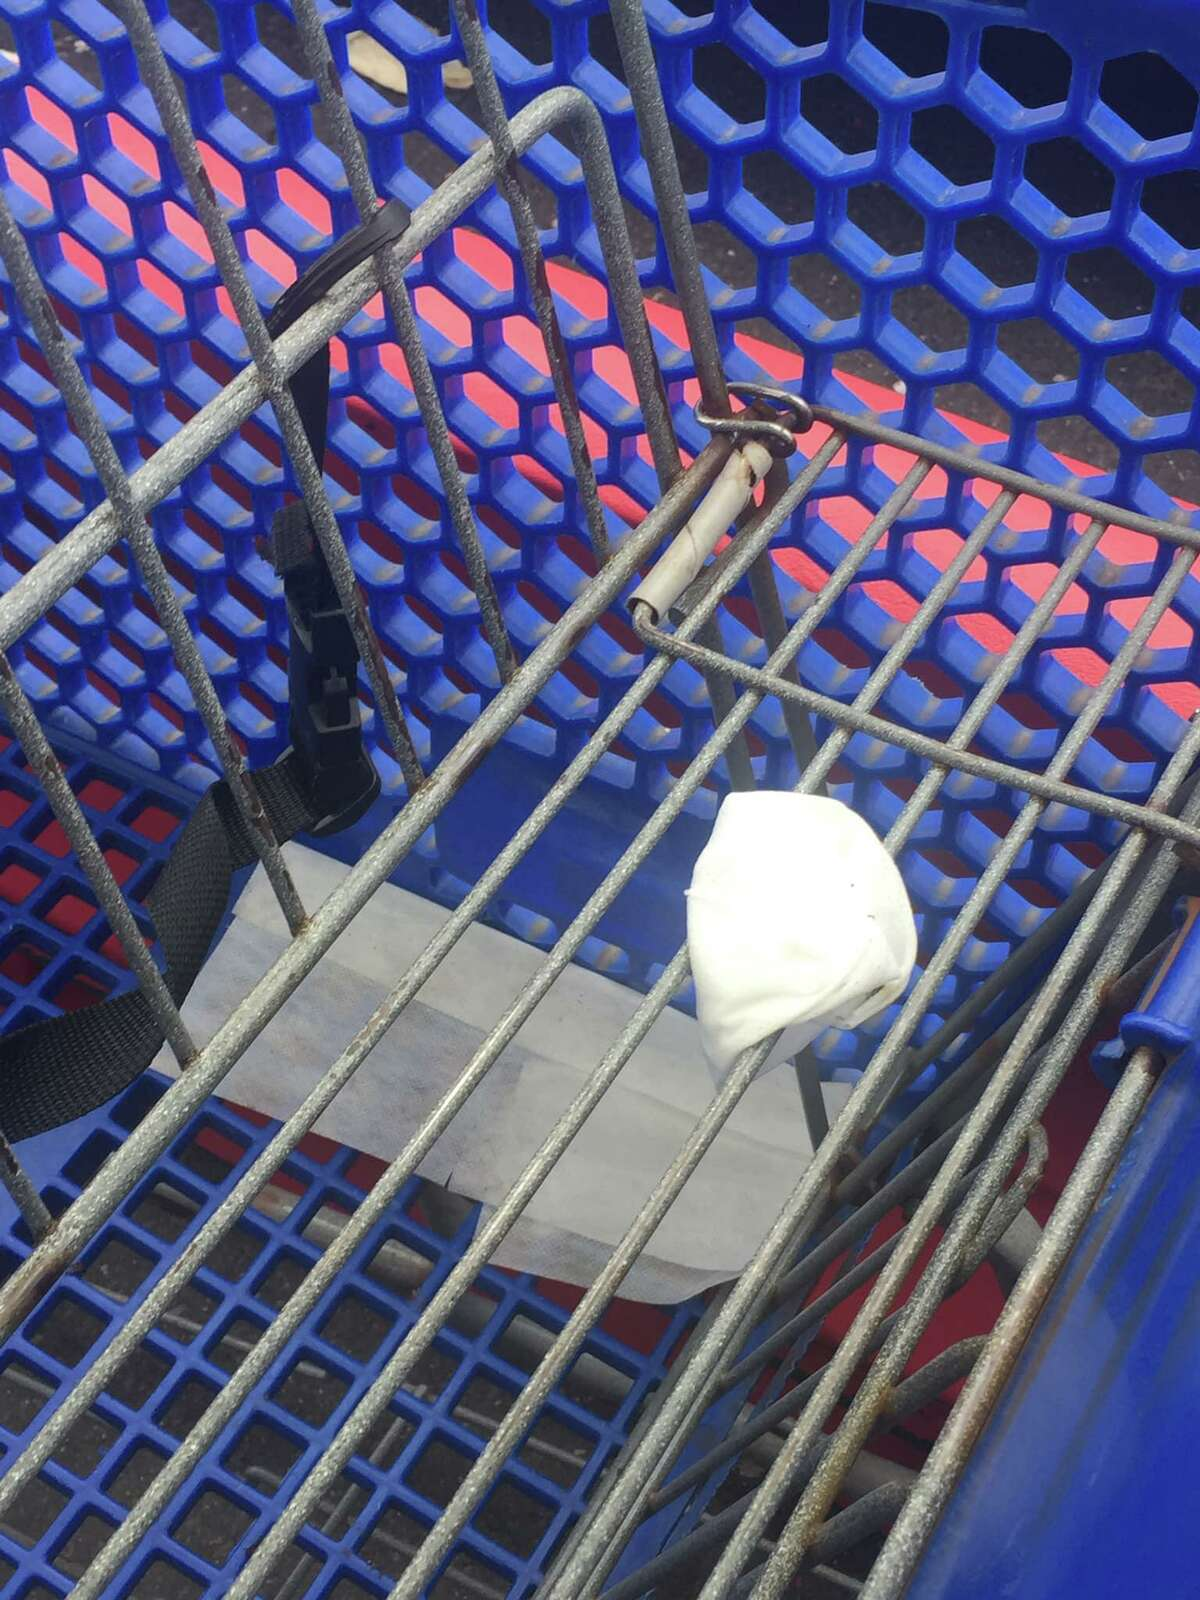 State Rep. Ben McGorty is calling on residents to put used gloves and masks in the trash, not on shopping carts or the ground on parking lots, as seen above at Shop Rite on Bridgeport Avenue.